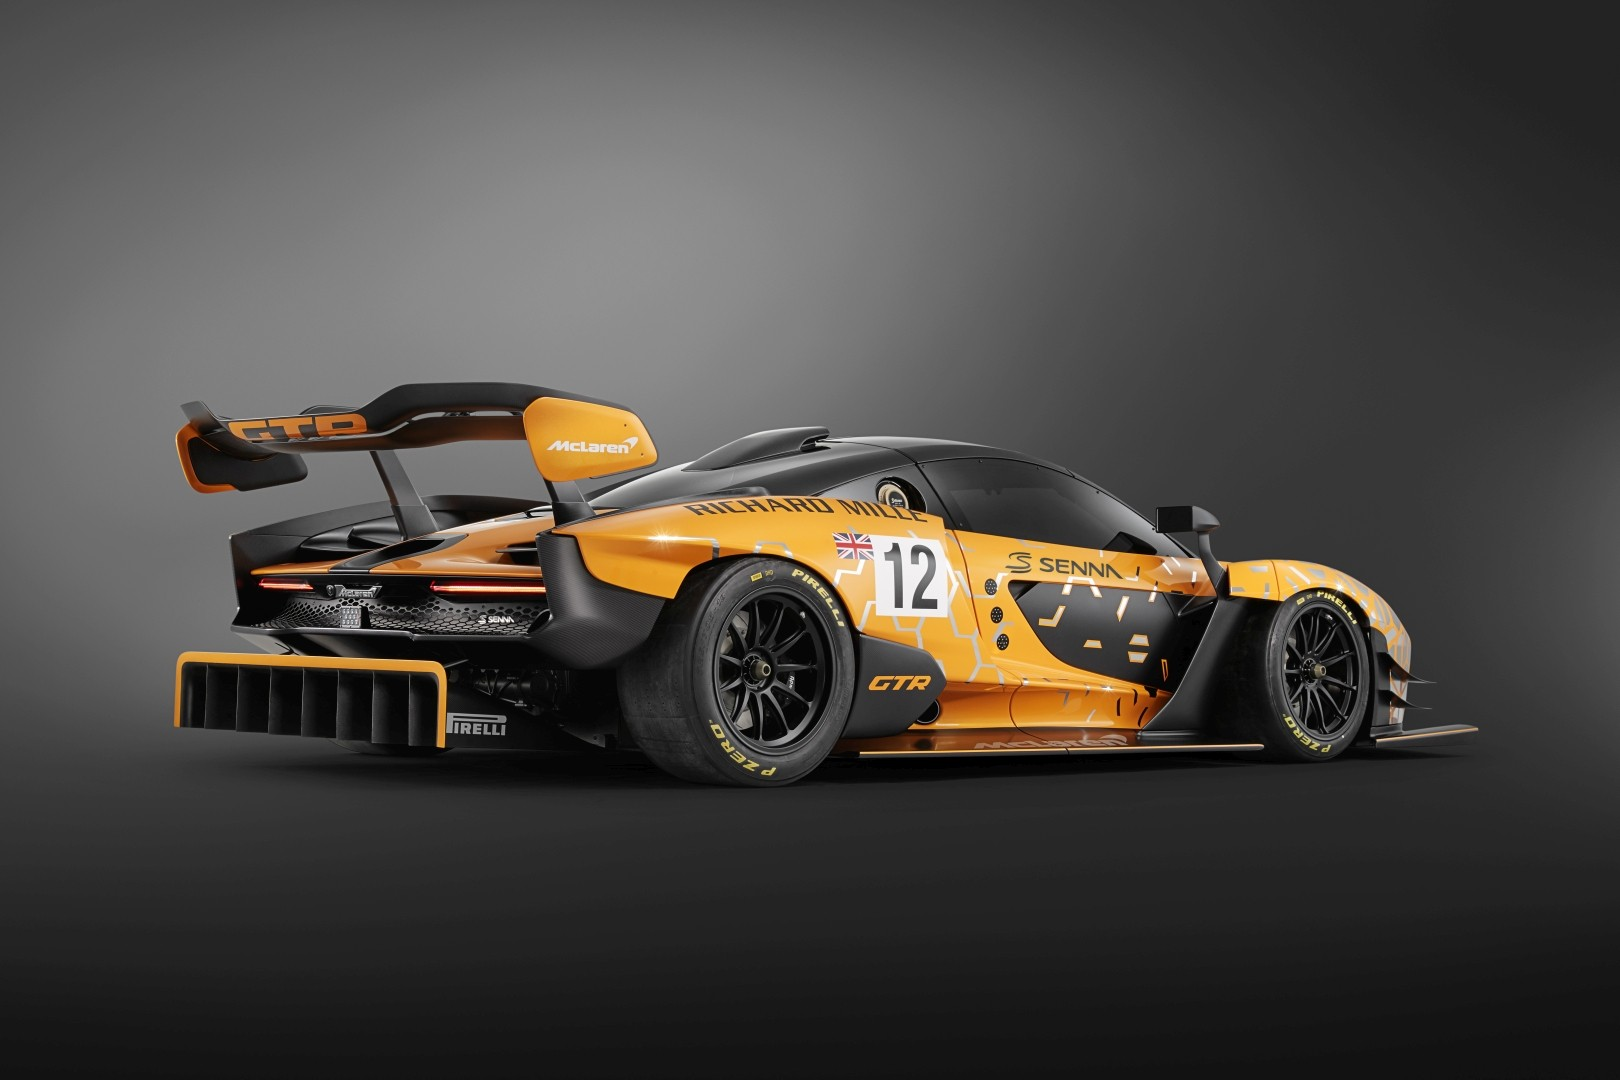 Mclaren Senna Gtr Customer Racecar Debuts As Quickest Mclaren Outside F1 Autoevolution